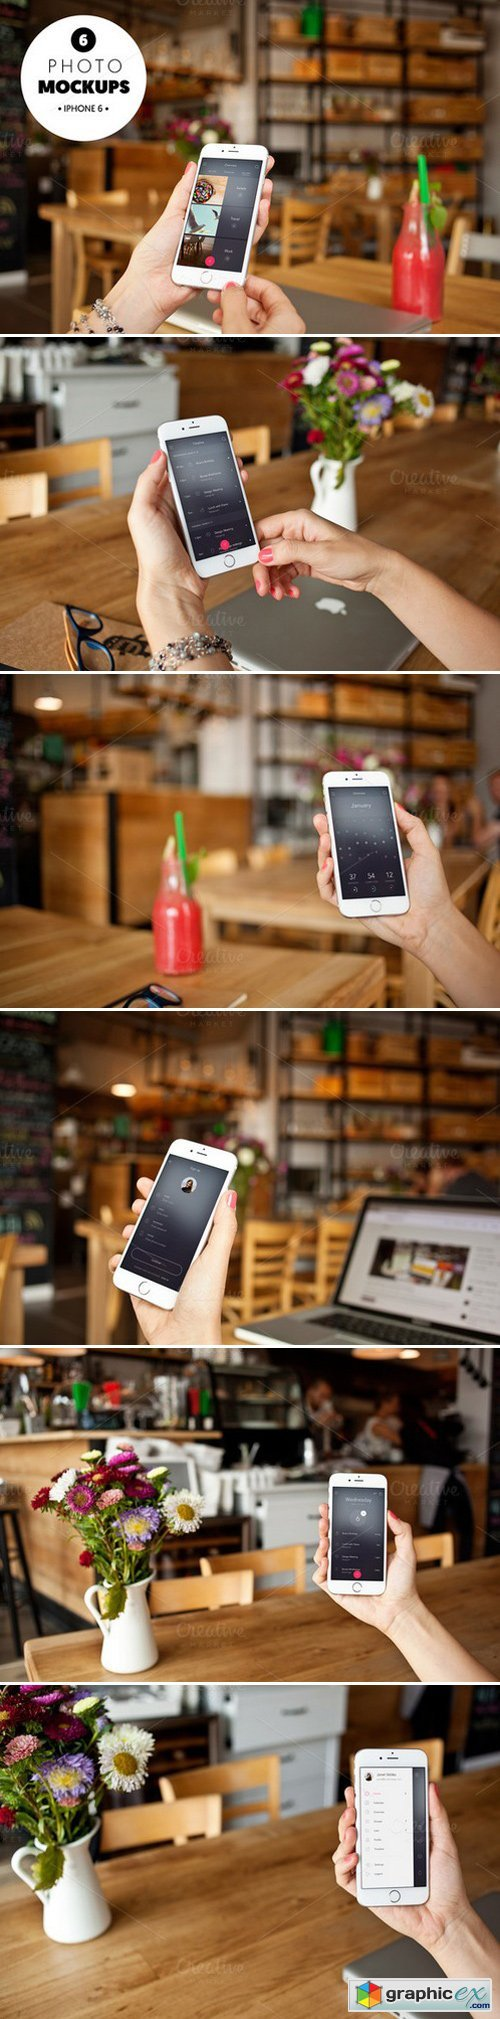 Iphone 6 in the cafe-6 photo mockups